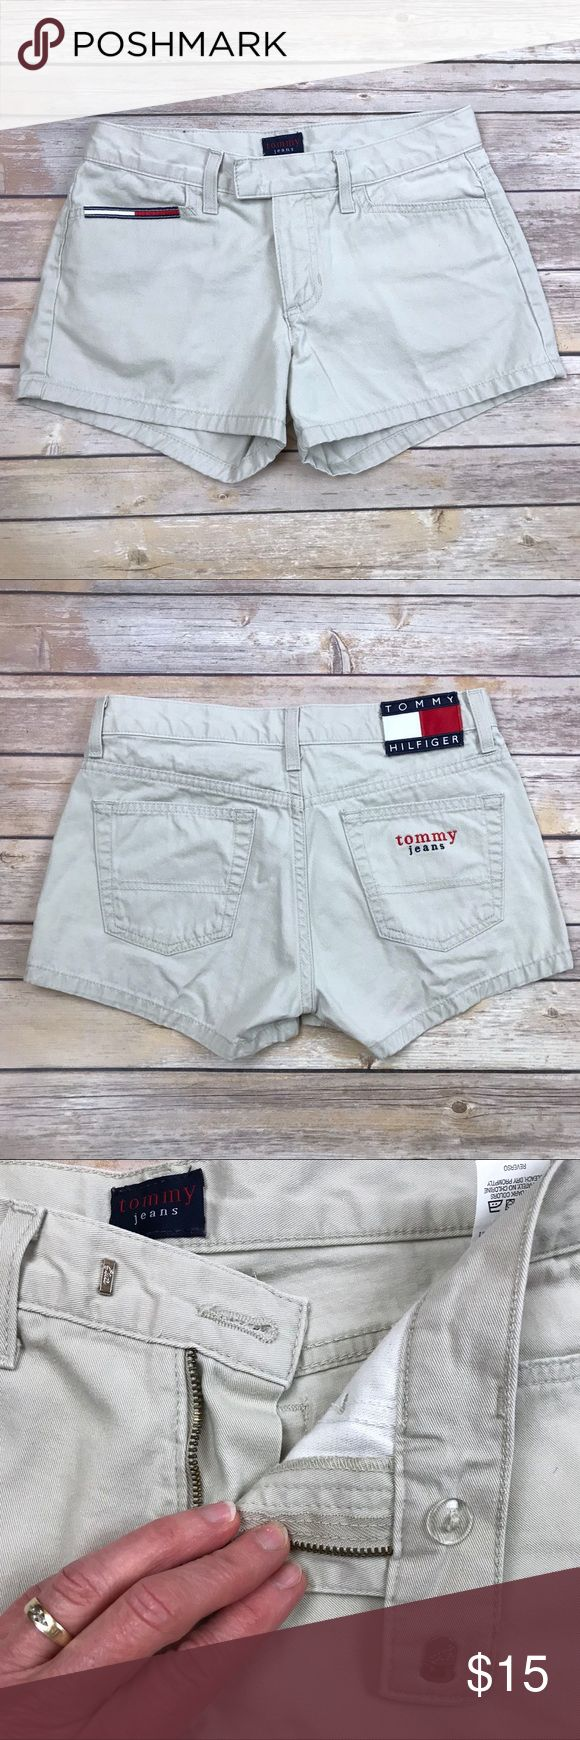 """Tommy Hilfiger khaki short shorts These Tommy Hilfiger shorts are in EUC! No fraying, no stains. Front and back pockets.  APPROX FLAT MEASUREMENTS  2 1/2"""" inseam 8"""" rise 13"""" ↔️ waist Tommy Hilfiger Shorts"""